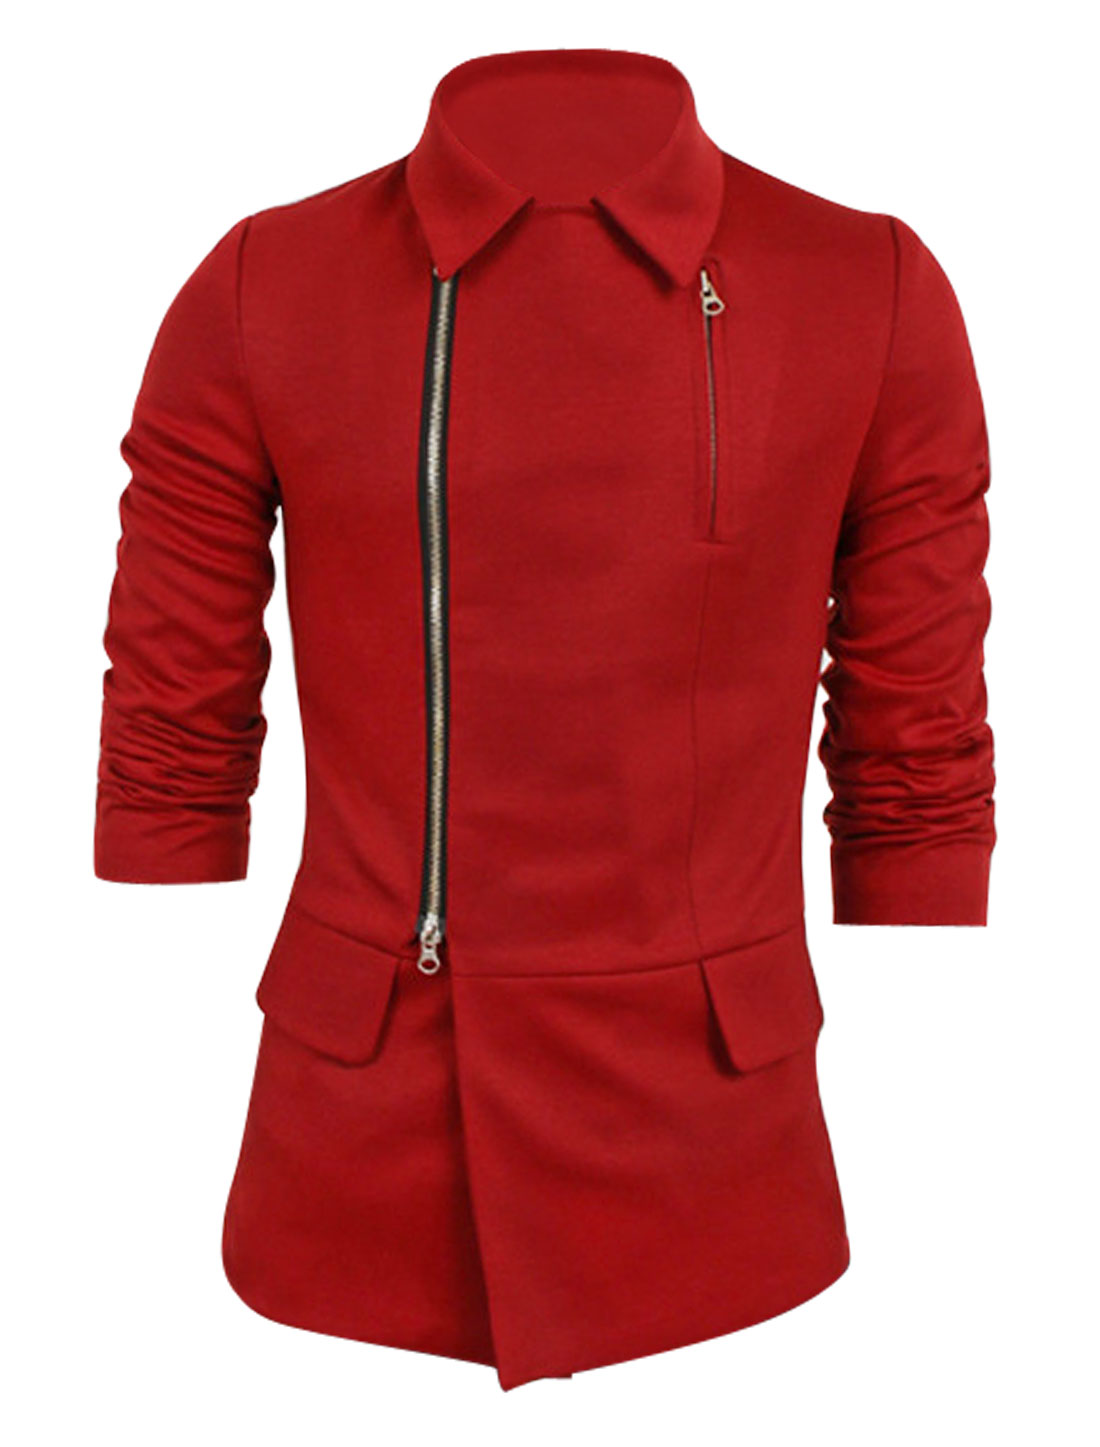 Men Long Sleeves Zip Closure New Fashion Jacket Red M